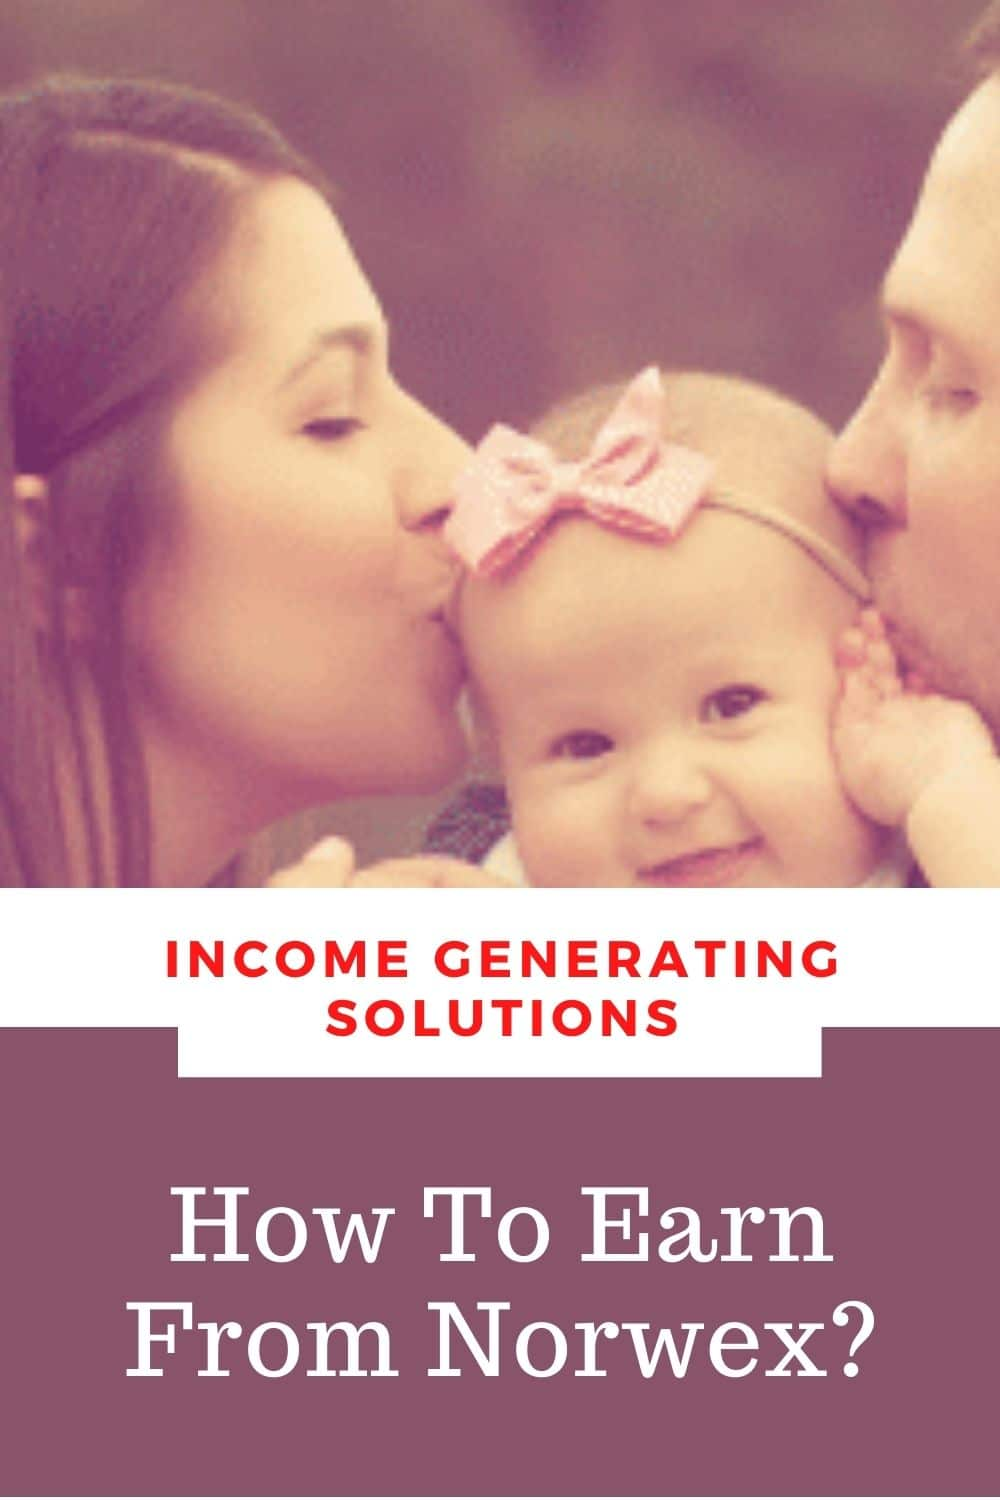 How to earn from norwex